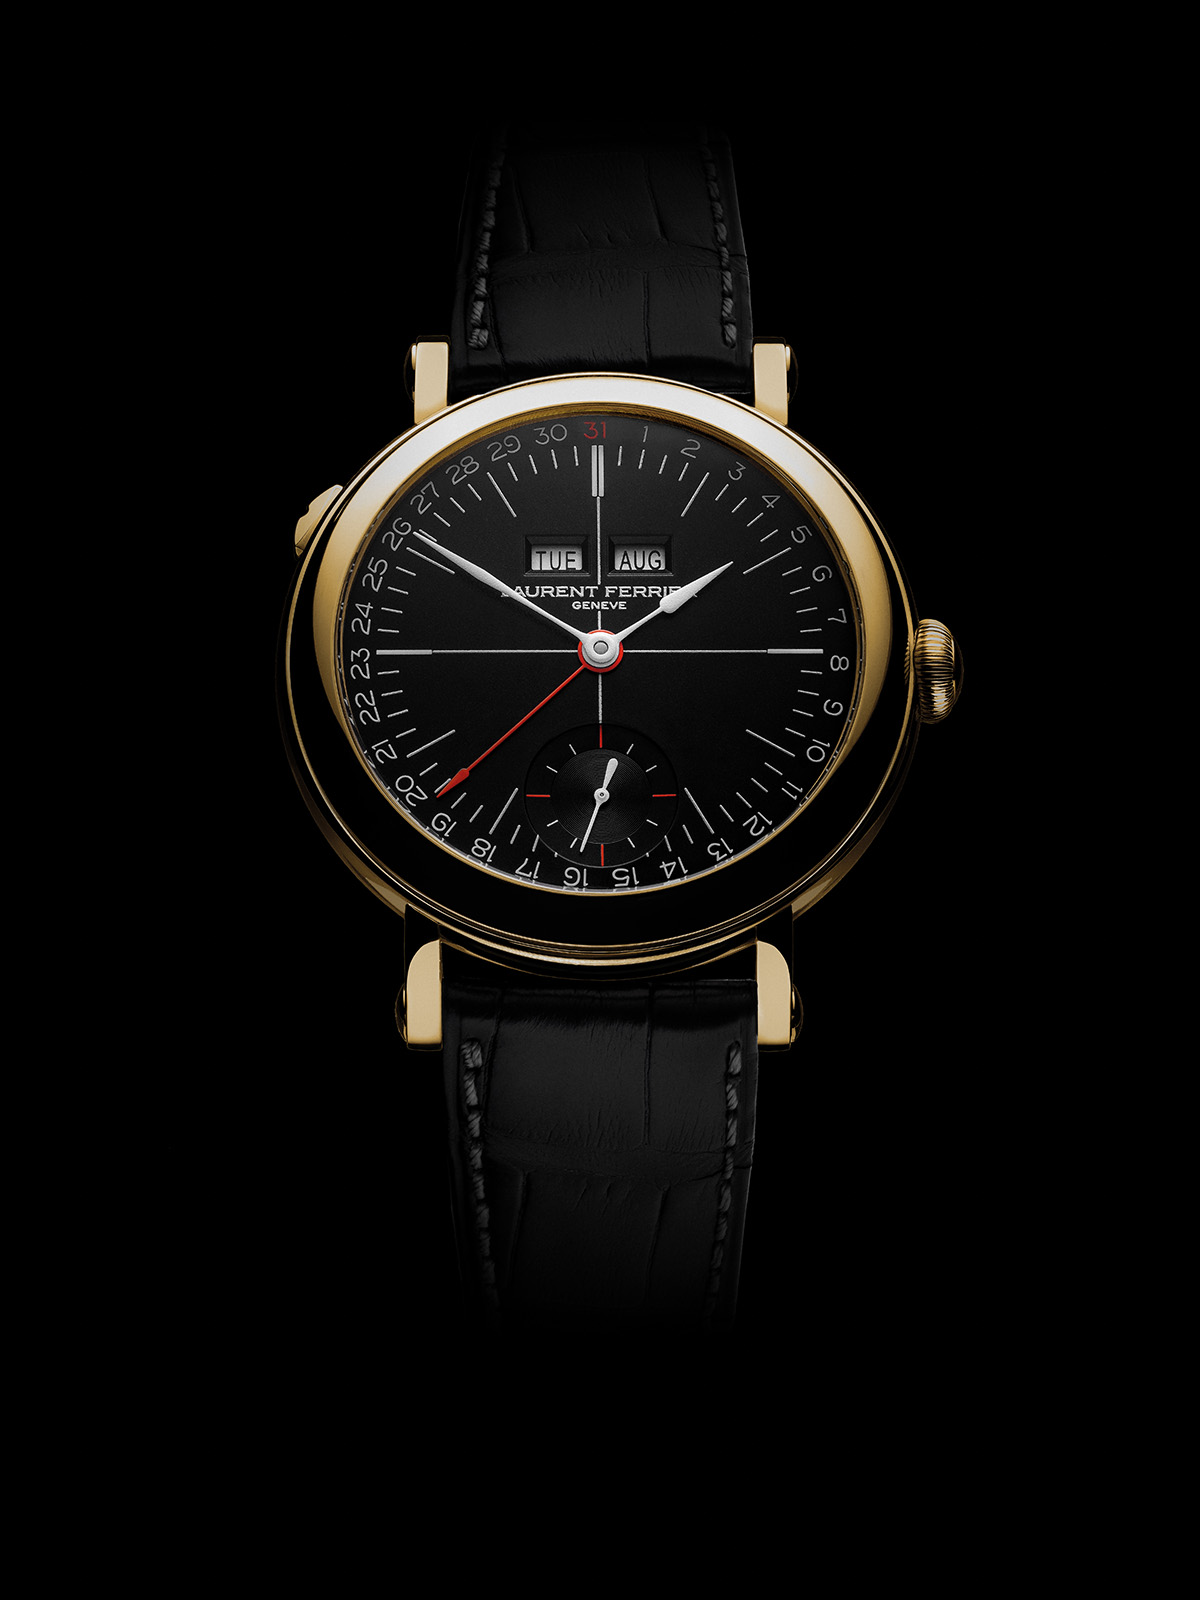 Laurent Ferrier Annual Calendar School Piece Opaline Black & White